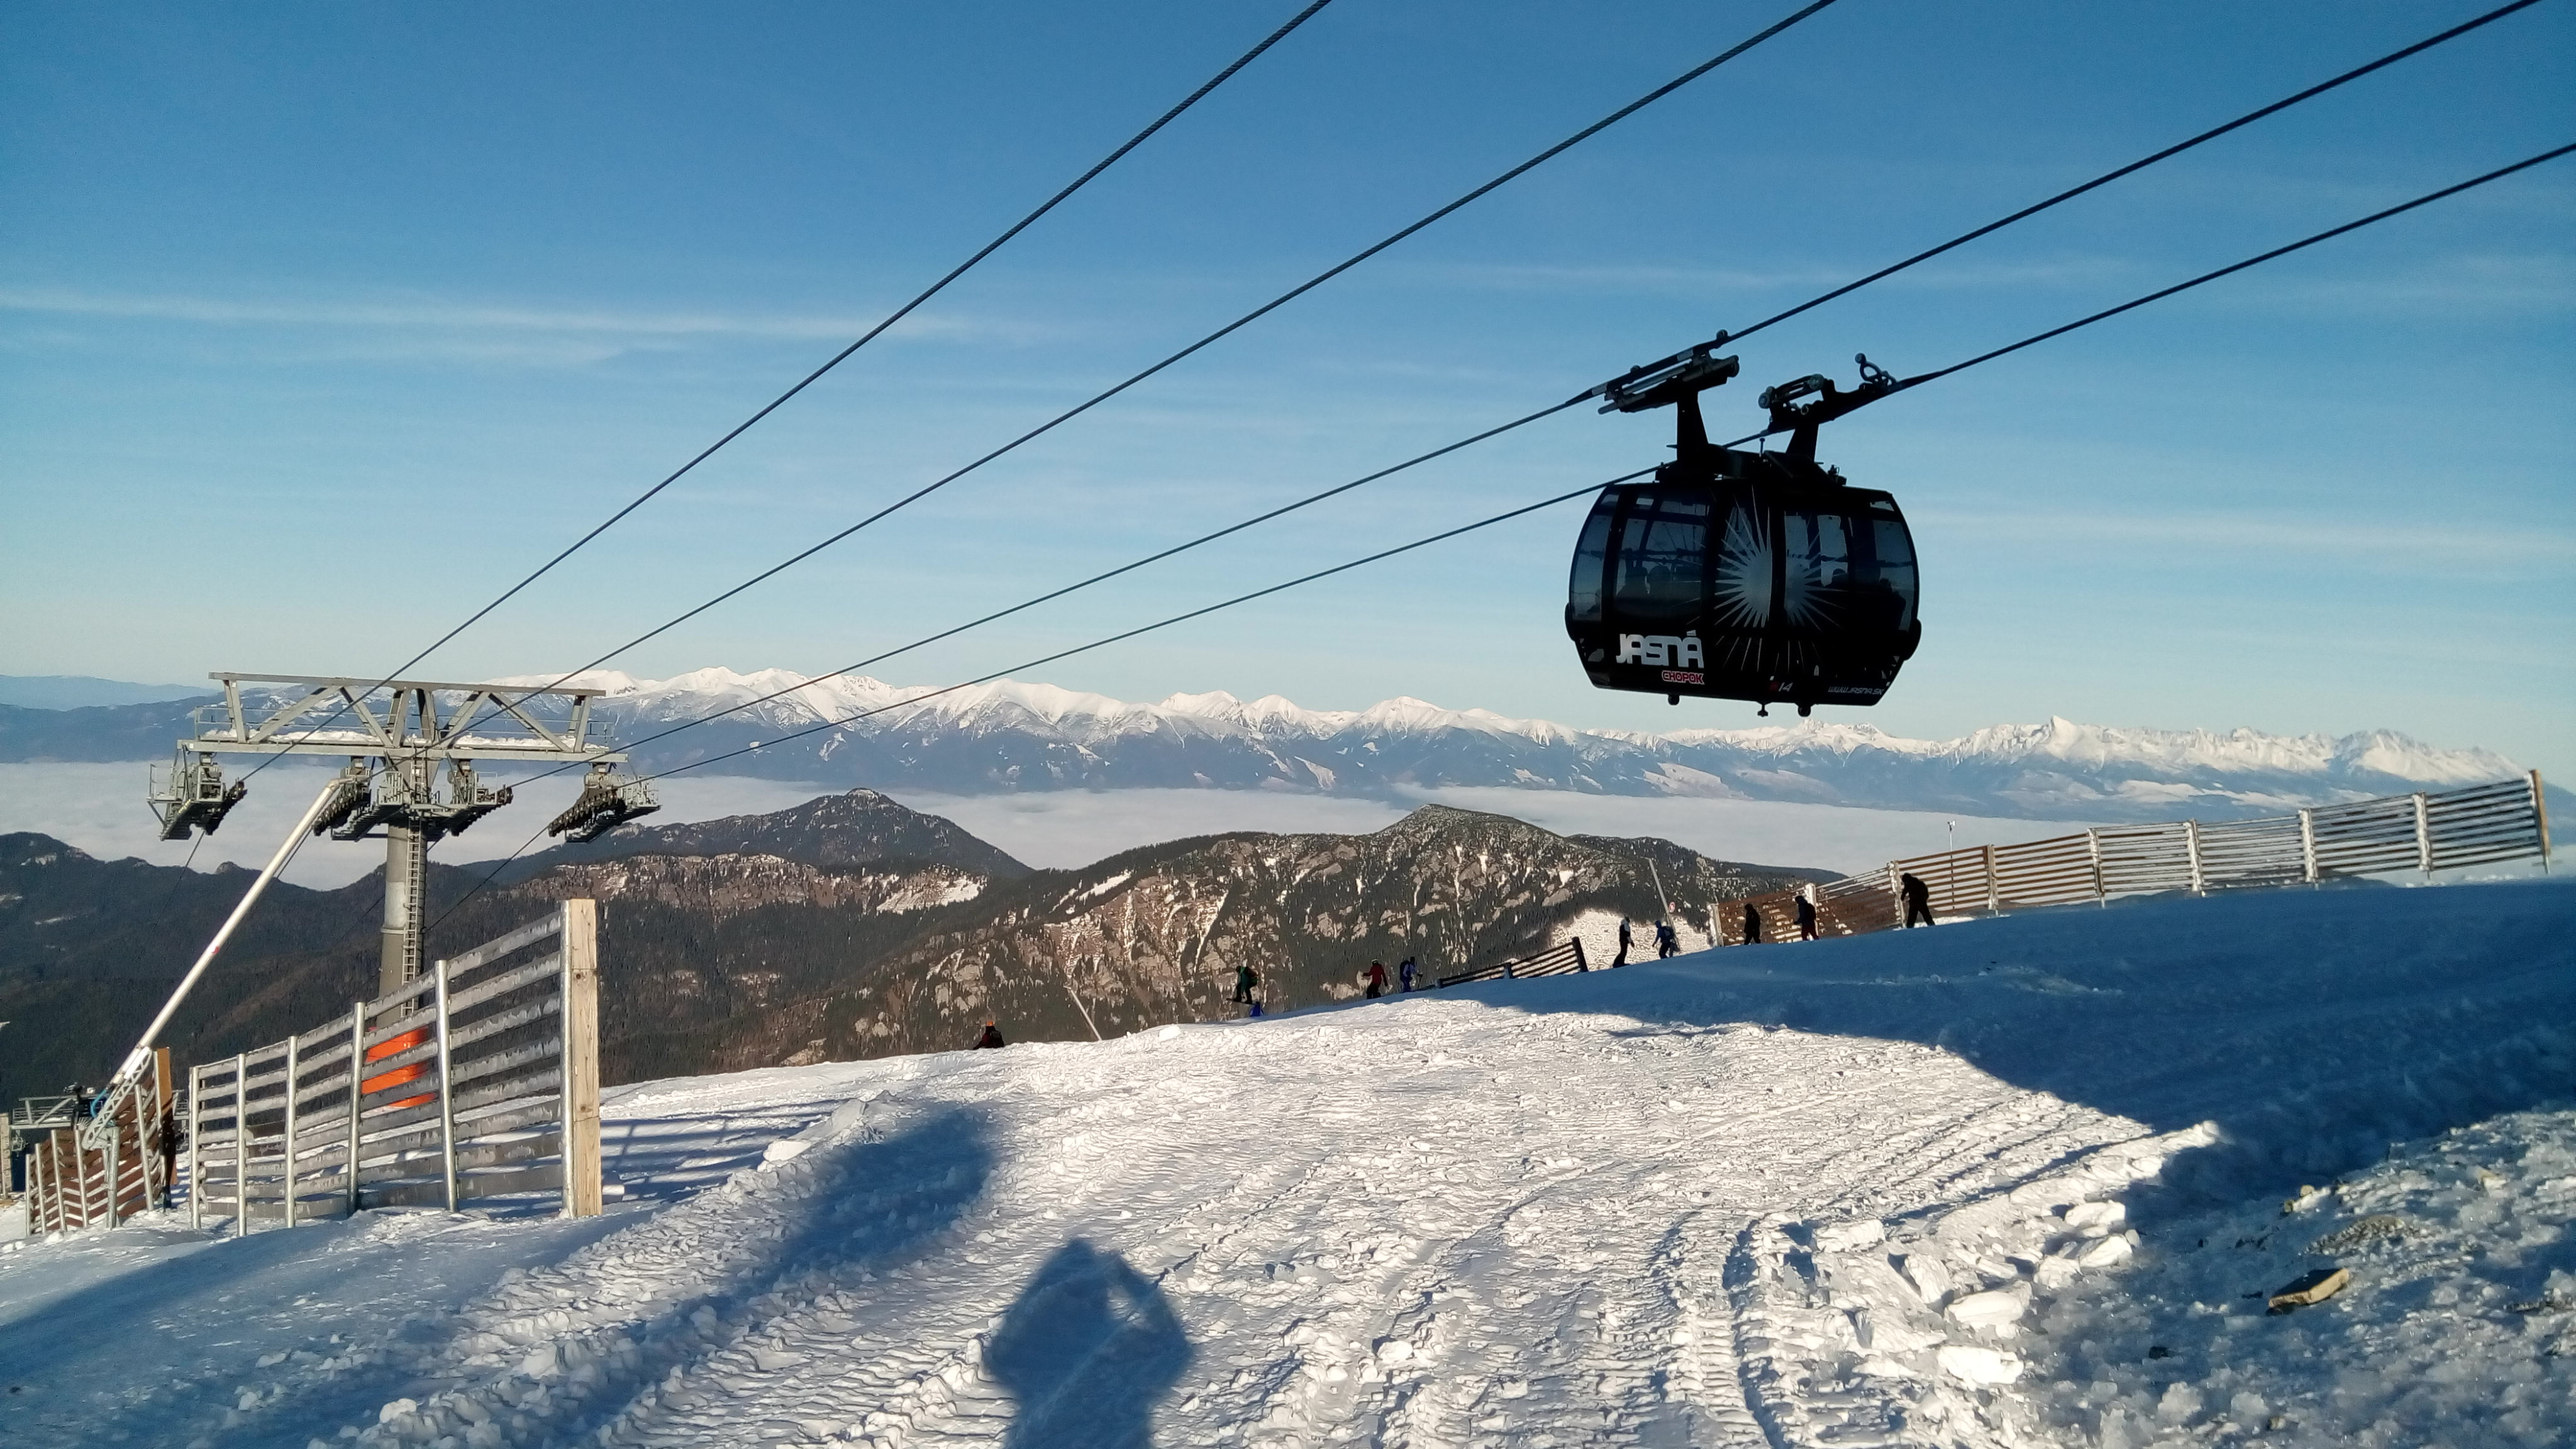 From the top of Funitel cable car